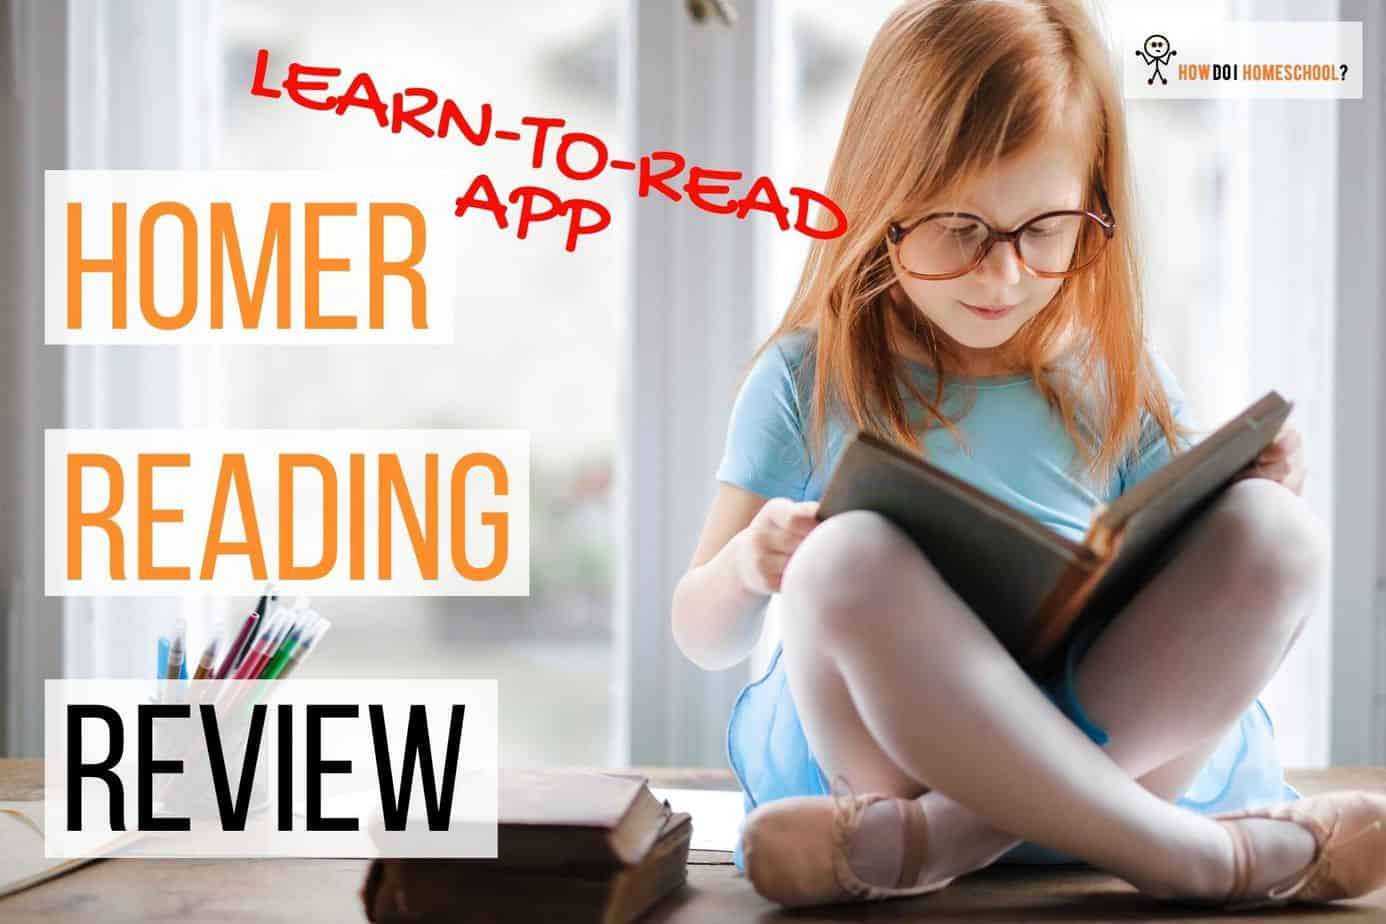 Homer Reading Review: Learn-to-Read App using Phonics & Sight Words